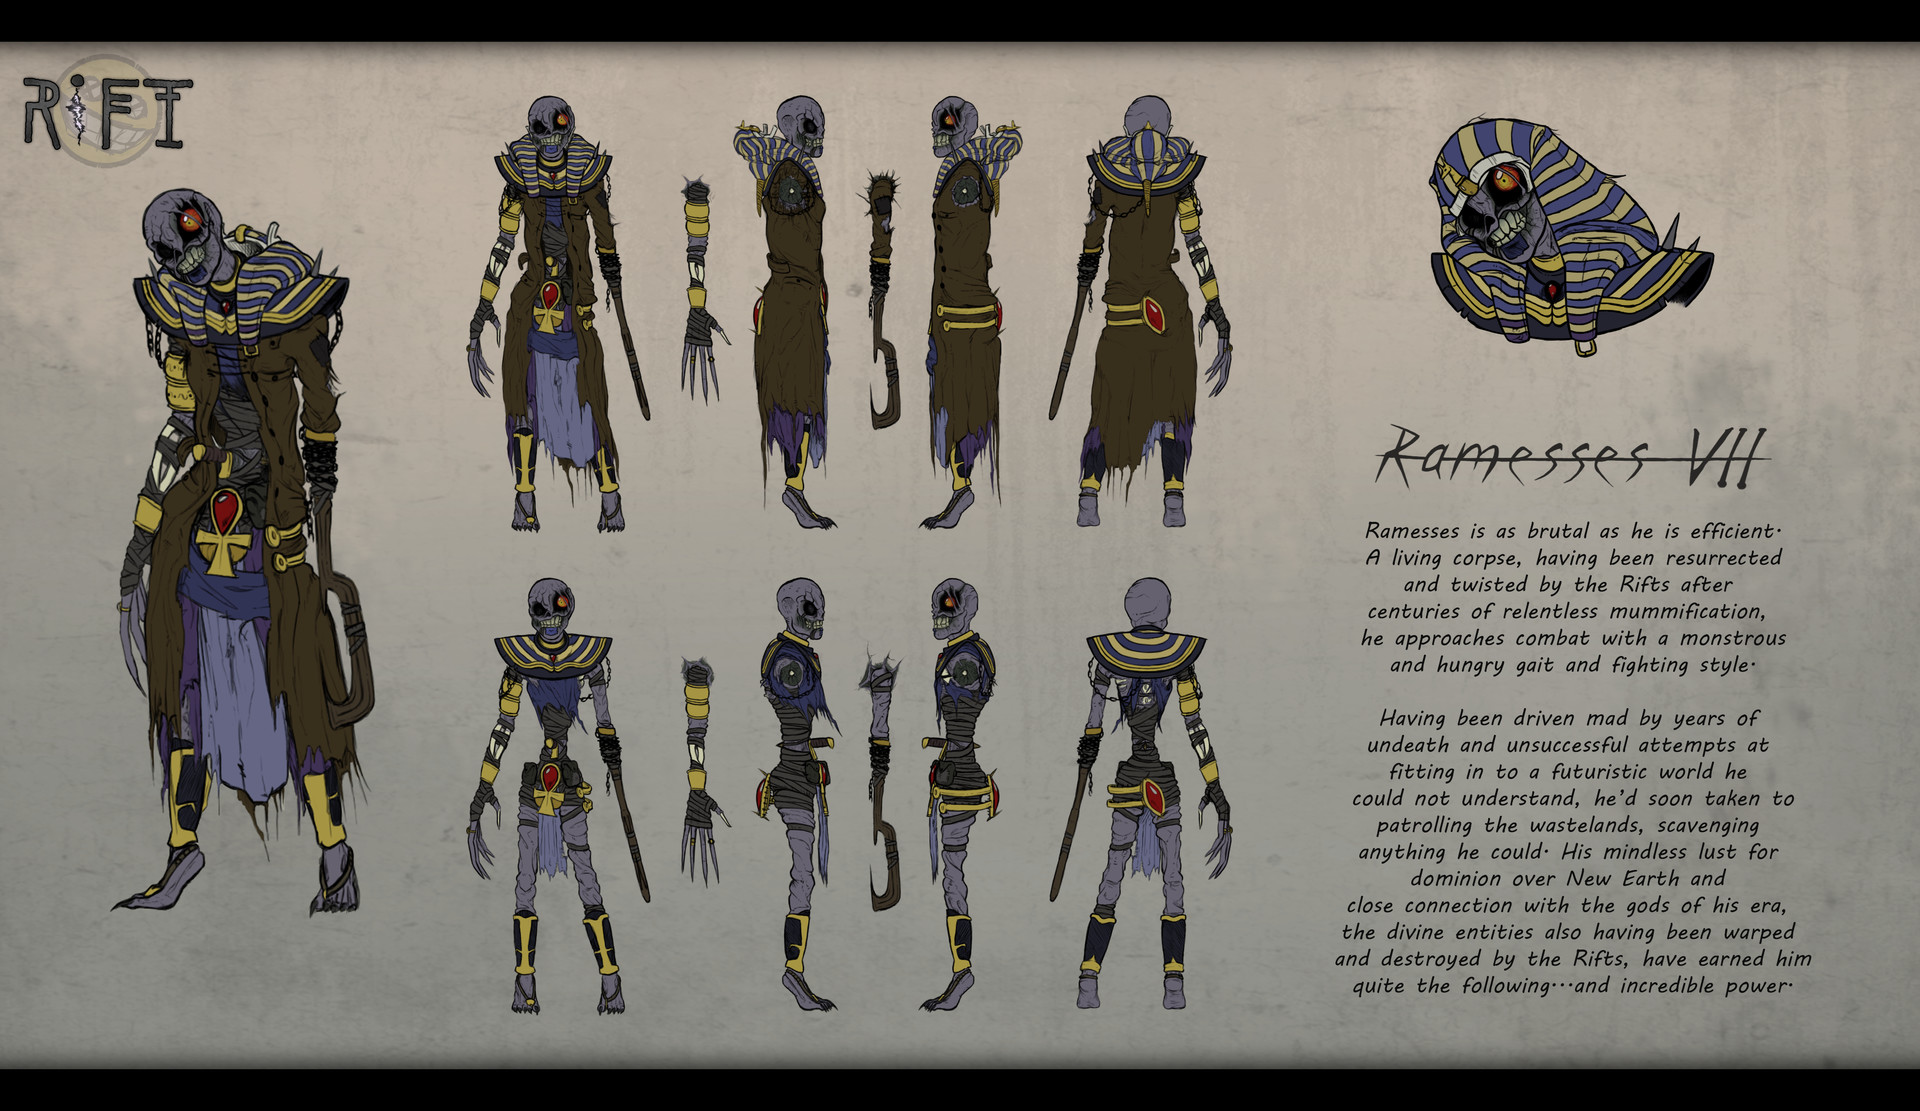 The Core Character Model Sheet Depicting Ramesses VII Himself